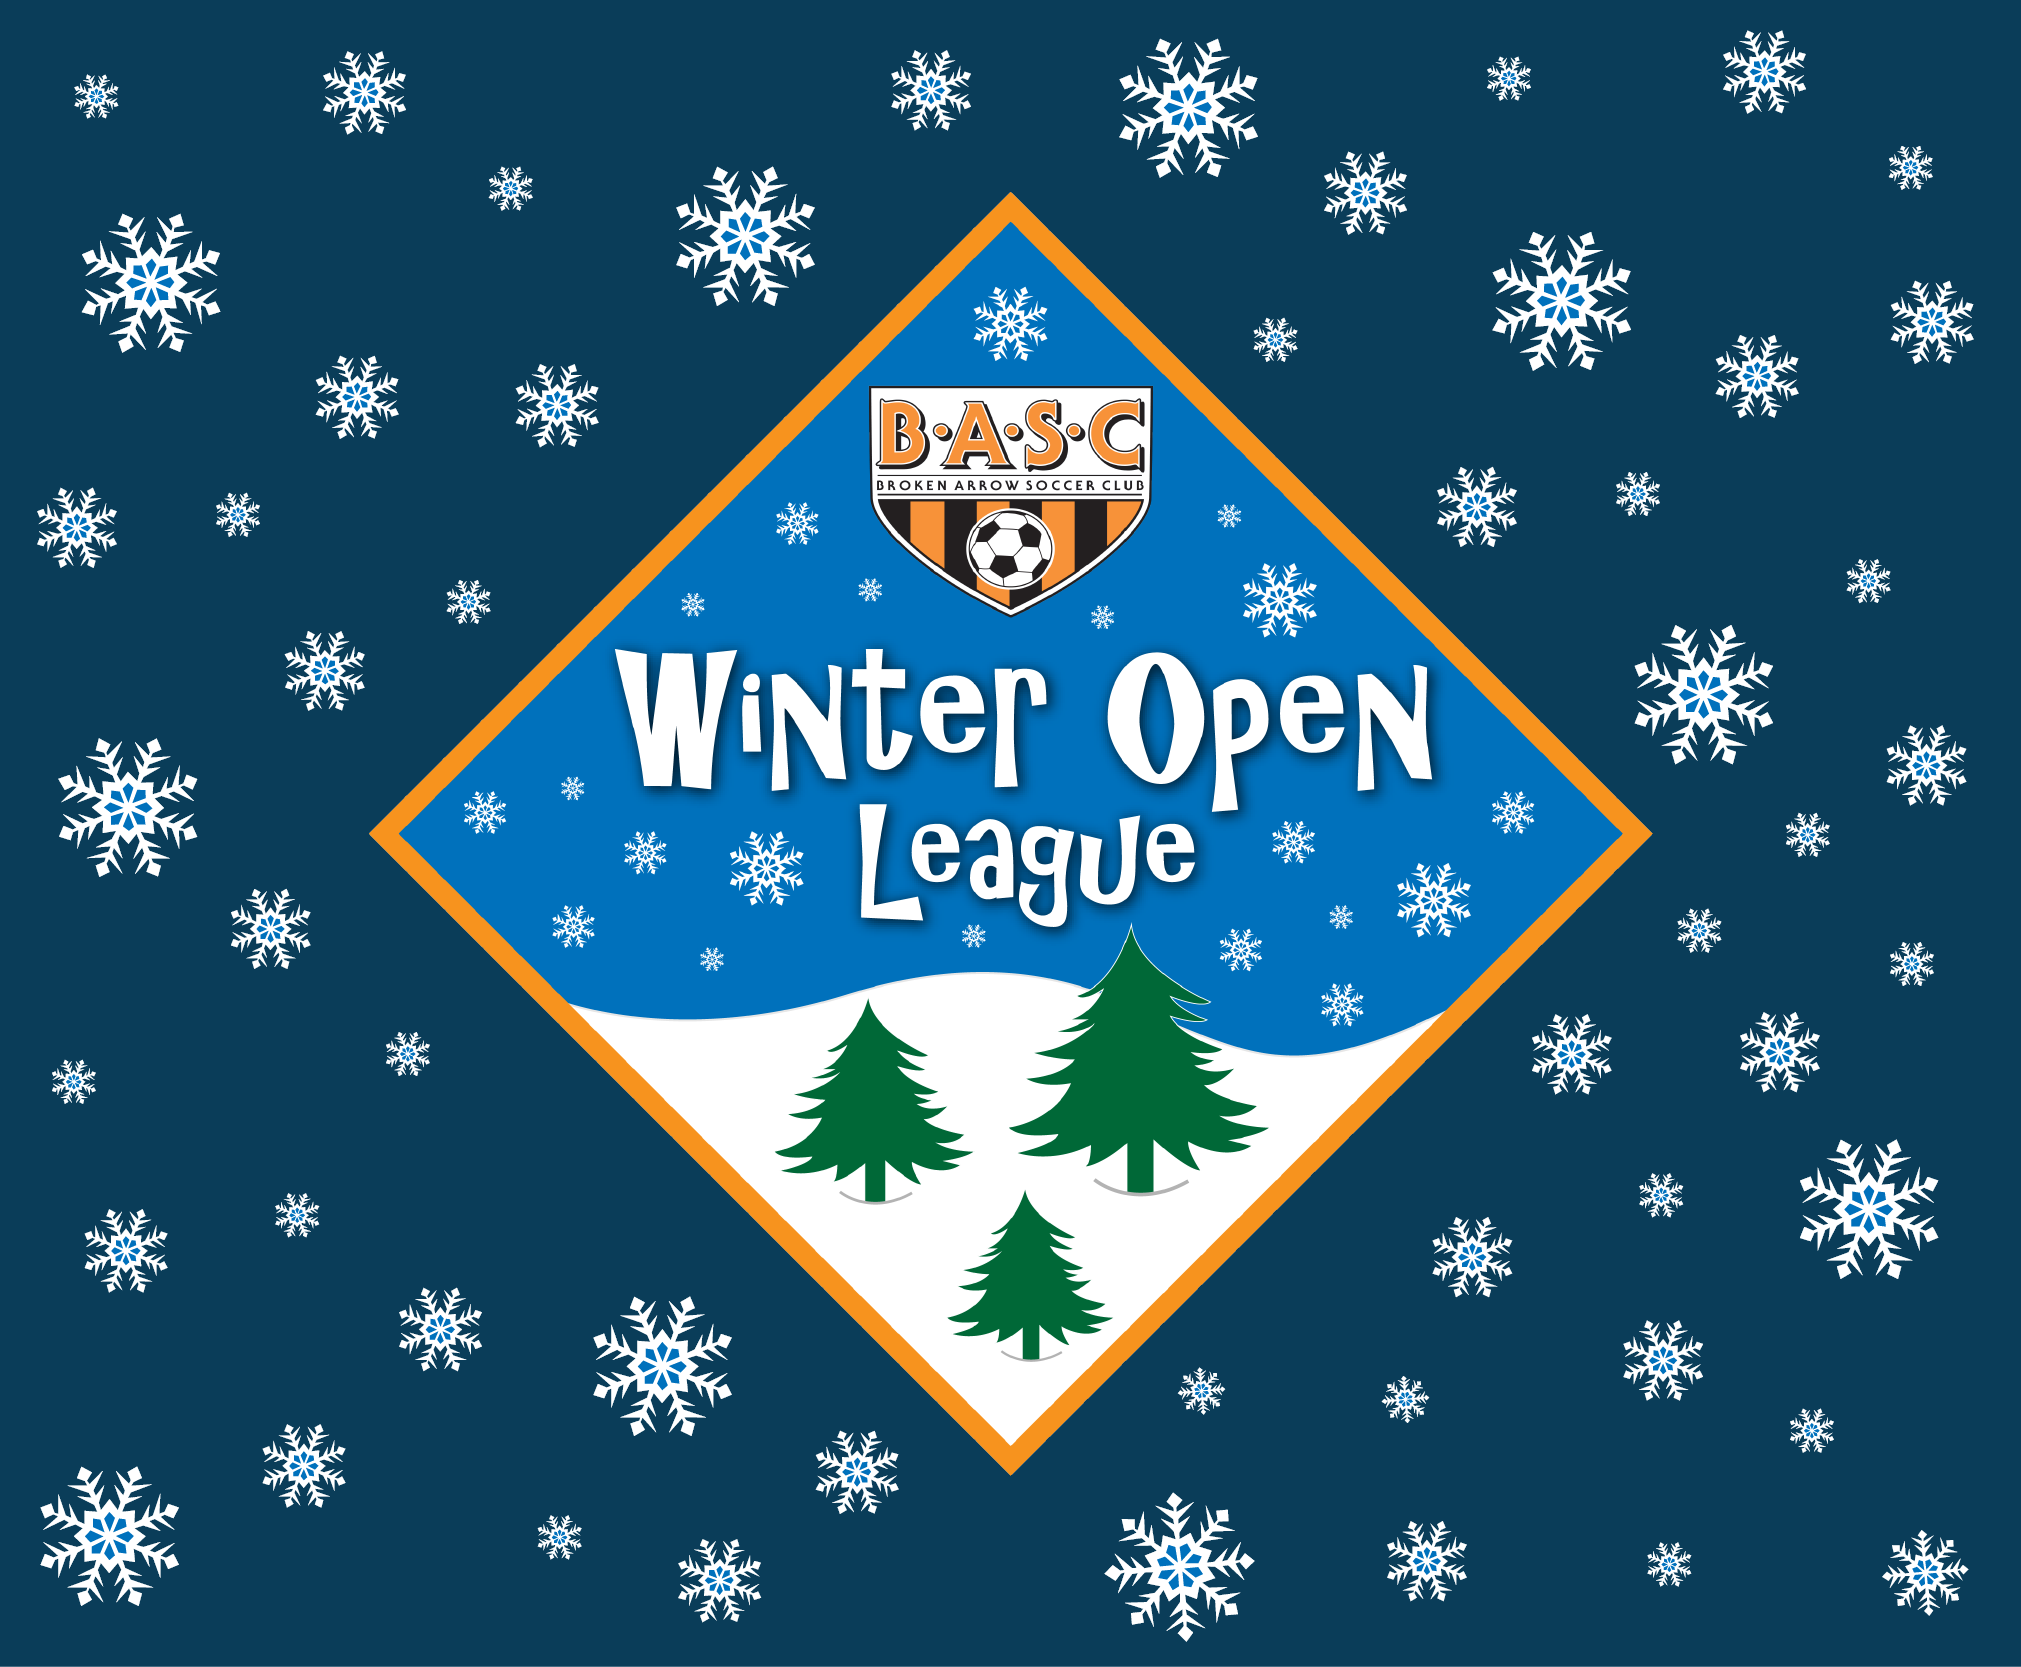 BASC Winter Open League